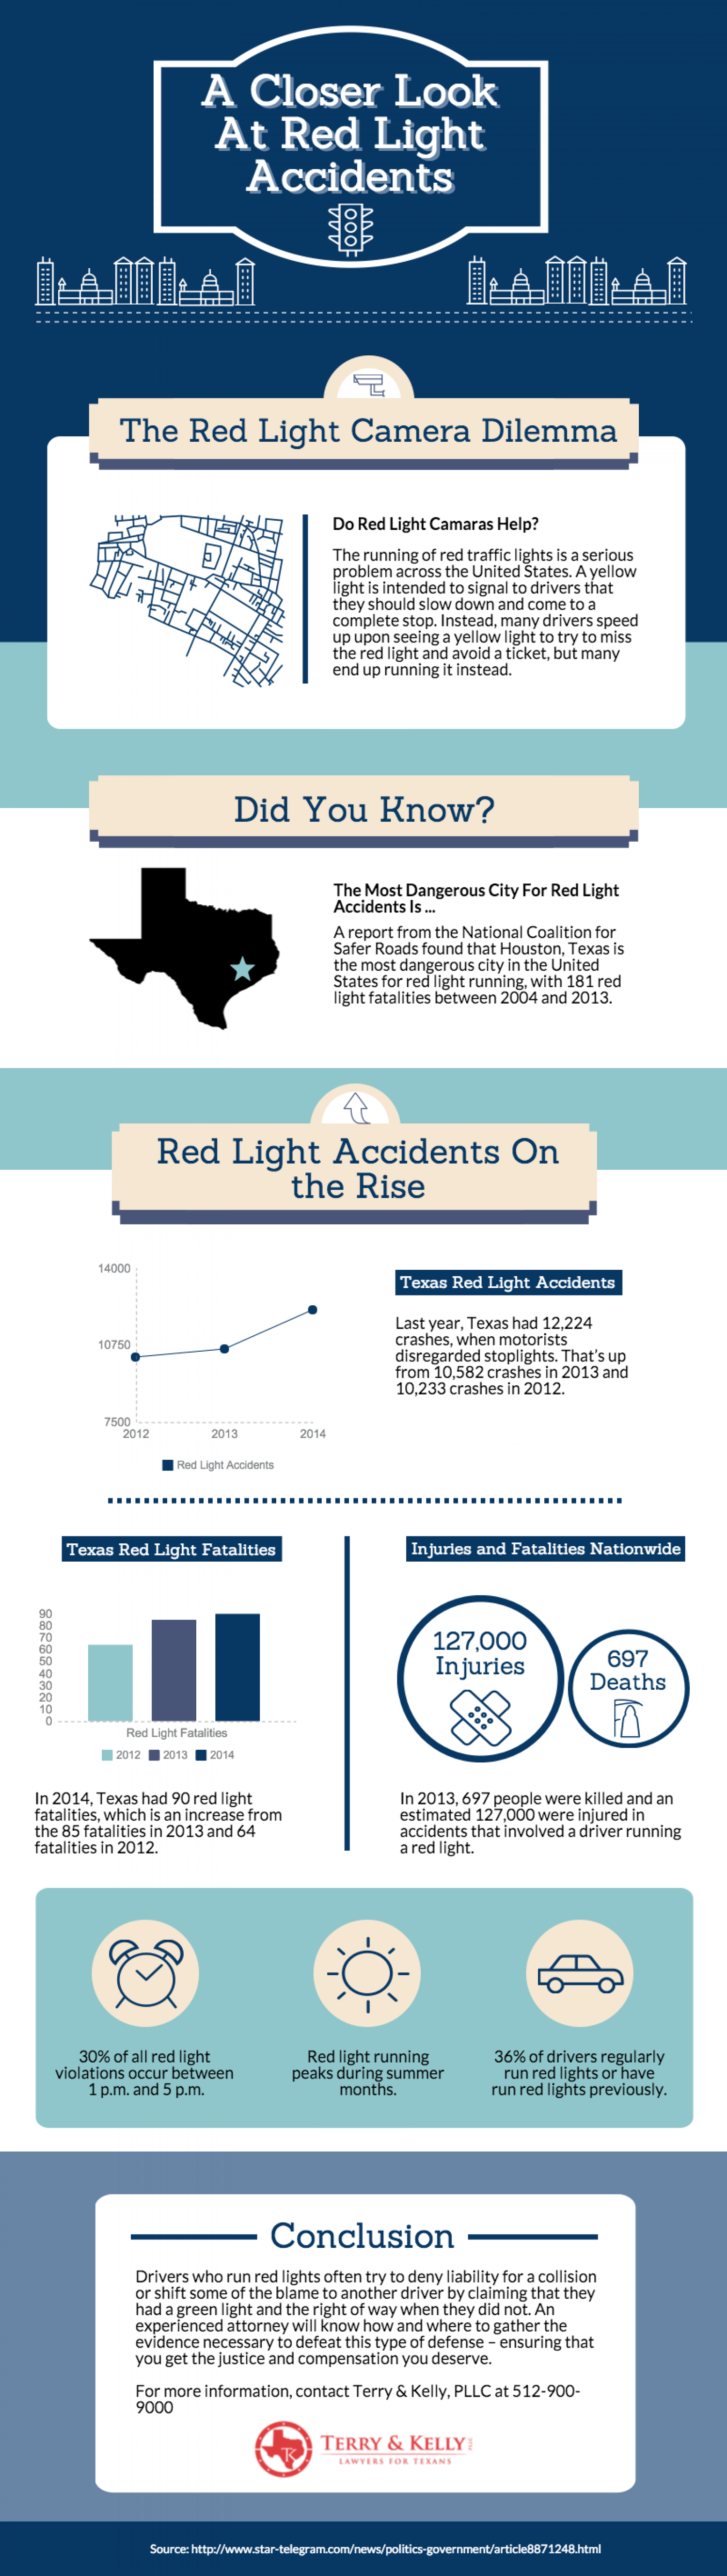 A Closer Look At Red Light Accidents Infographic